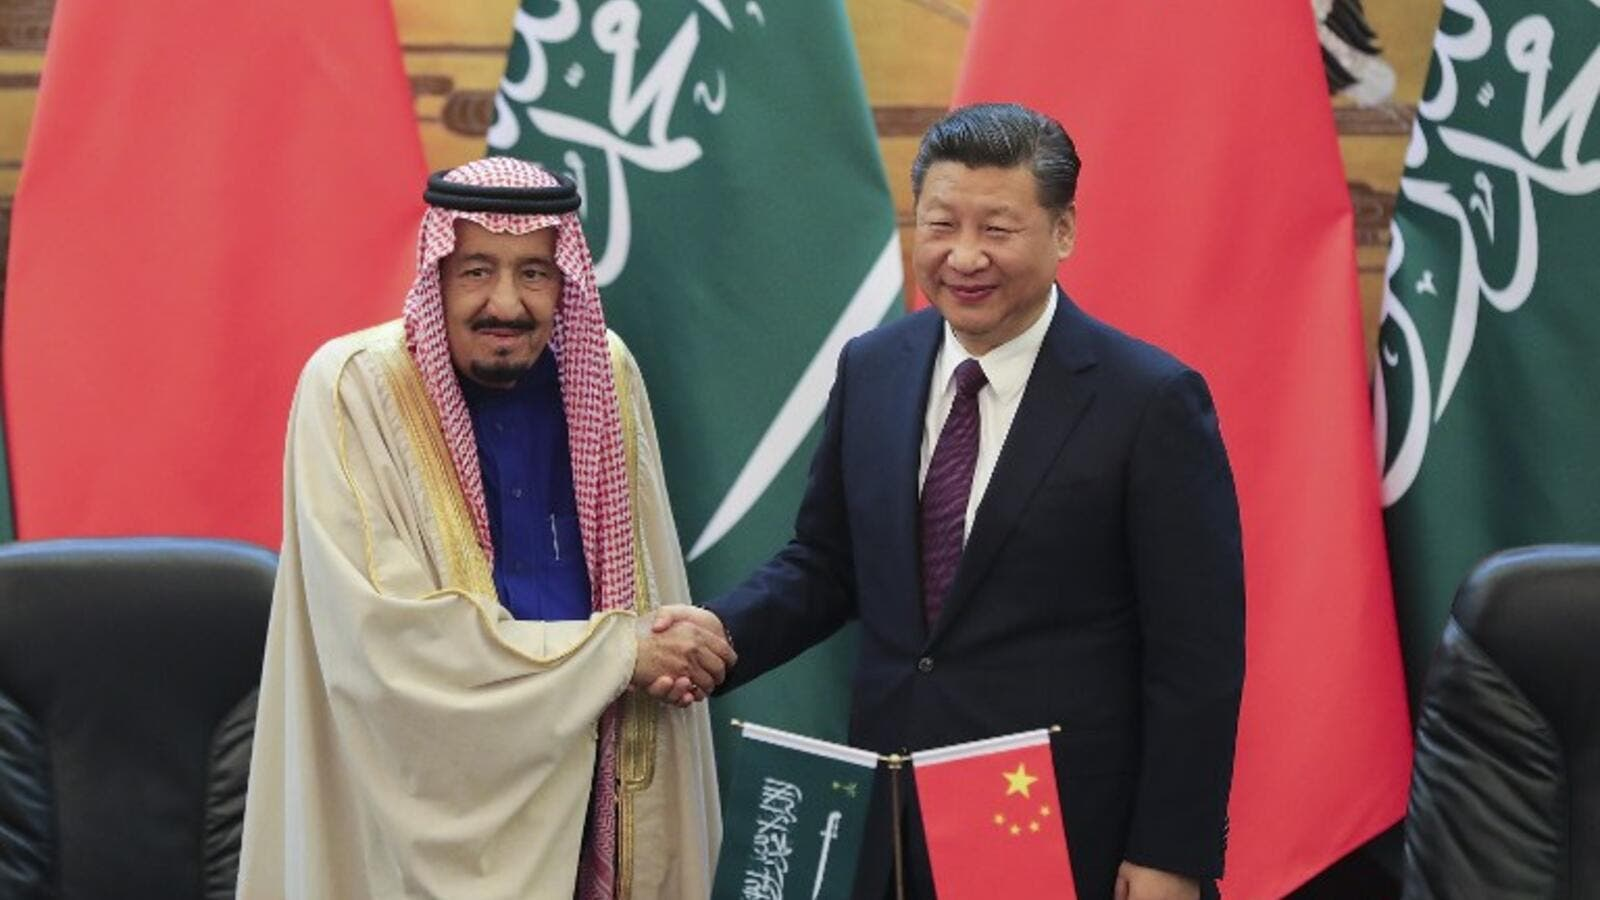 The agreements between Saudi Arabia and China will cover a variety of issues, ranging from energy to space technology. (AFP/Lintao Zhang)